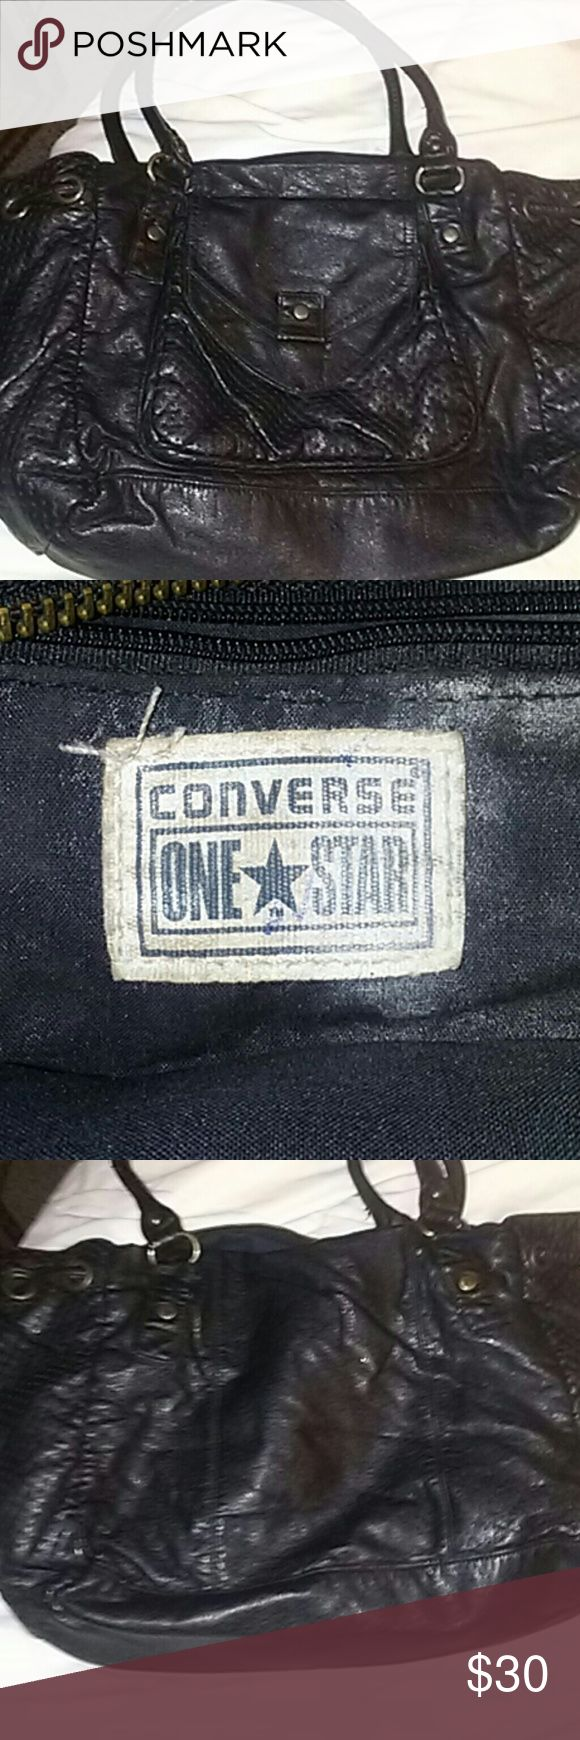 """CHIK """"CONVERSE ONE STAR"""" PURSE AUTHENTIC """"CONVERSE"""" BRAND CLOTHING/ACCESSORIES.  Gently used with minor ware and tear but nothing significant. Looks like it has some kind of powder on the inside, probably baby powder or make up. OVERALL A FANTASTIC PURSE. VERY CHIC AND VERY STYLISH. NO REASONABLE OFFER REFUSED! SAVE 30% when you BUNDLE 3 or more items. Thanks for stopping by and GOD BLESS! Converse Bags Hobos"""